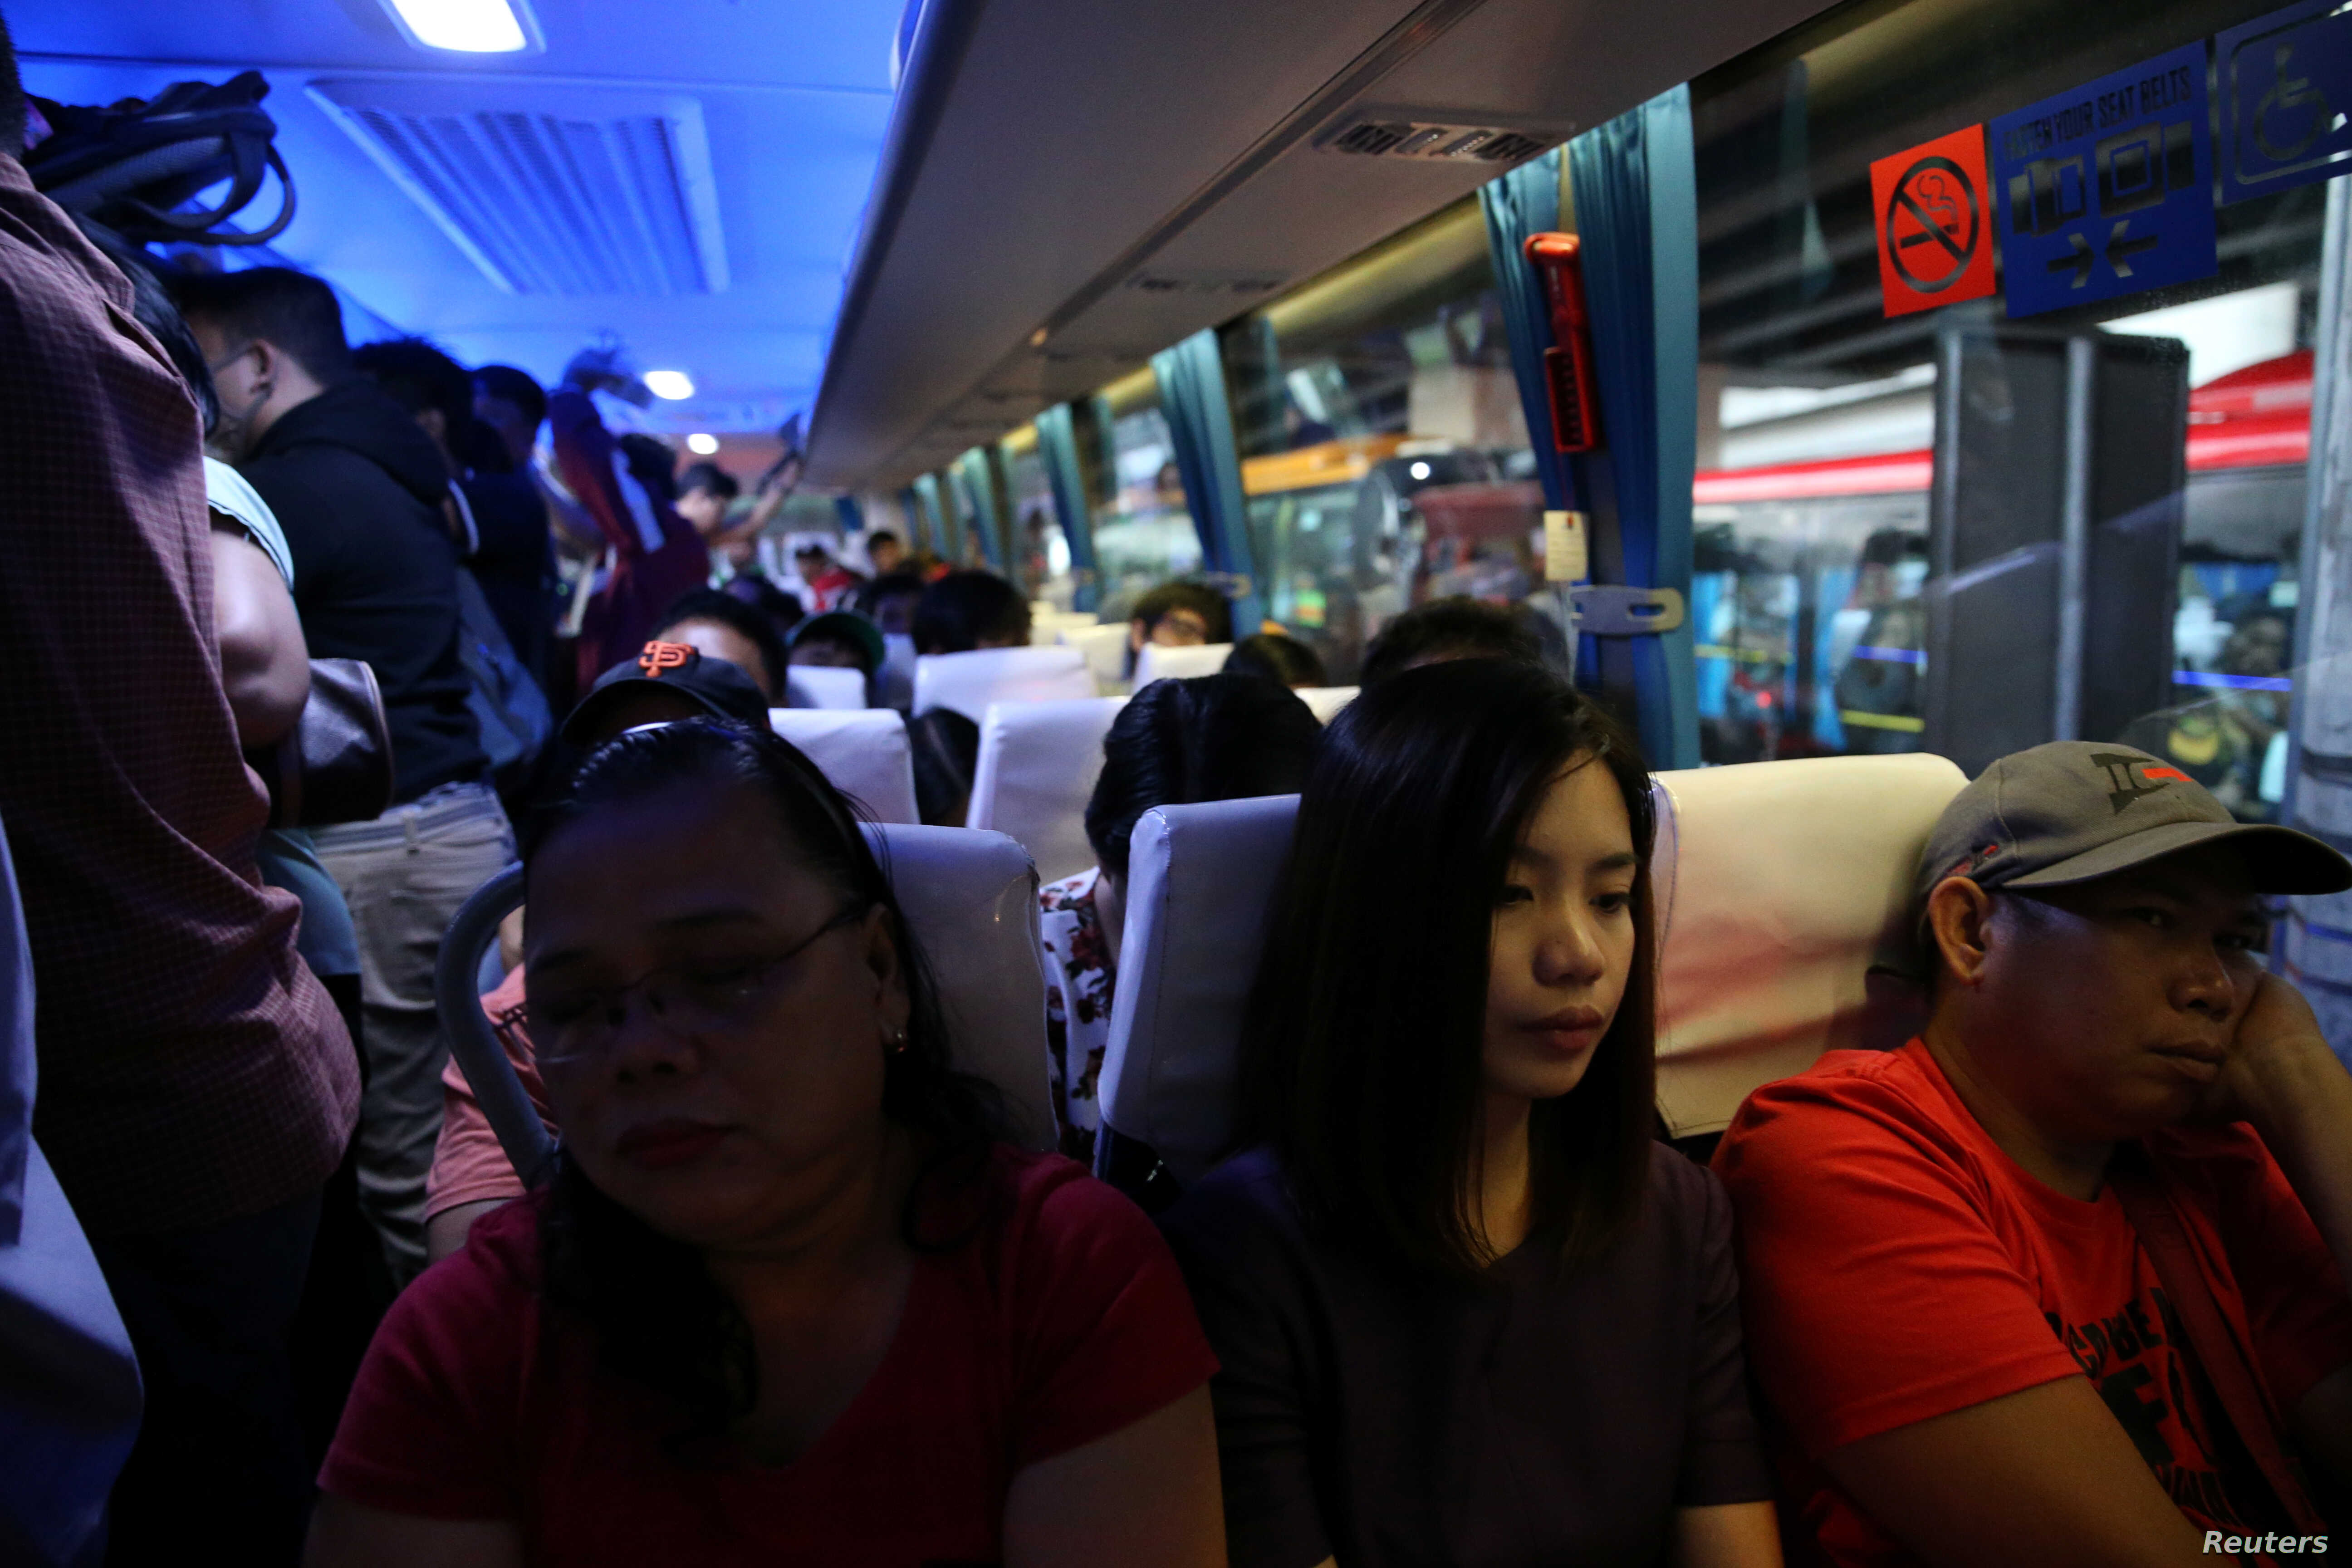 Janice Sarad, 22, who works for a bank, rides a crowded bus going to work in Cubao, Quezon City, Metro Manila, Philippines, Nov. 26, 2018.